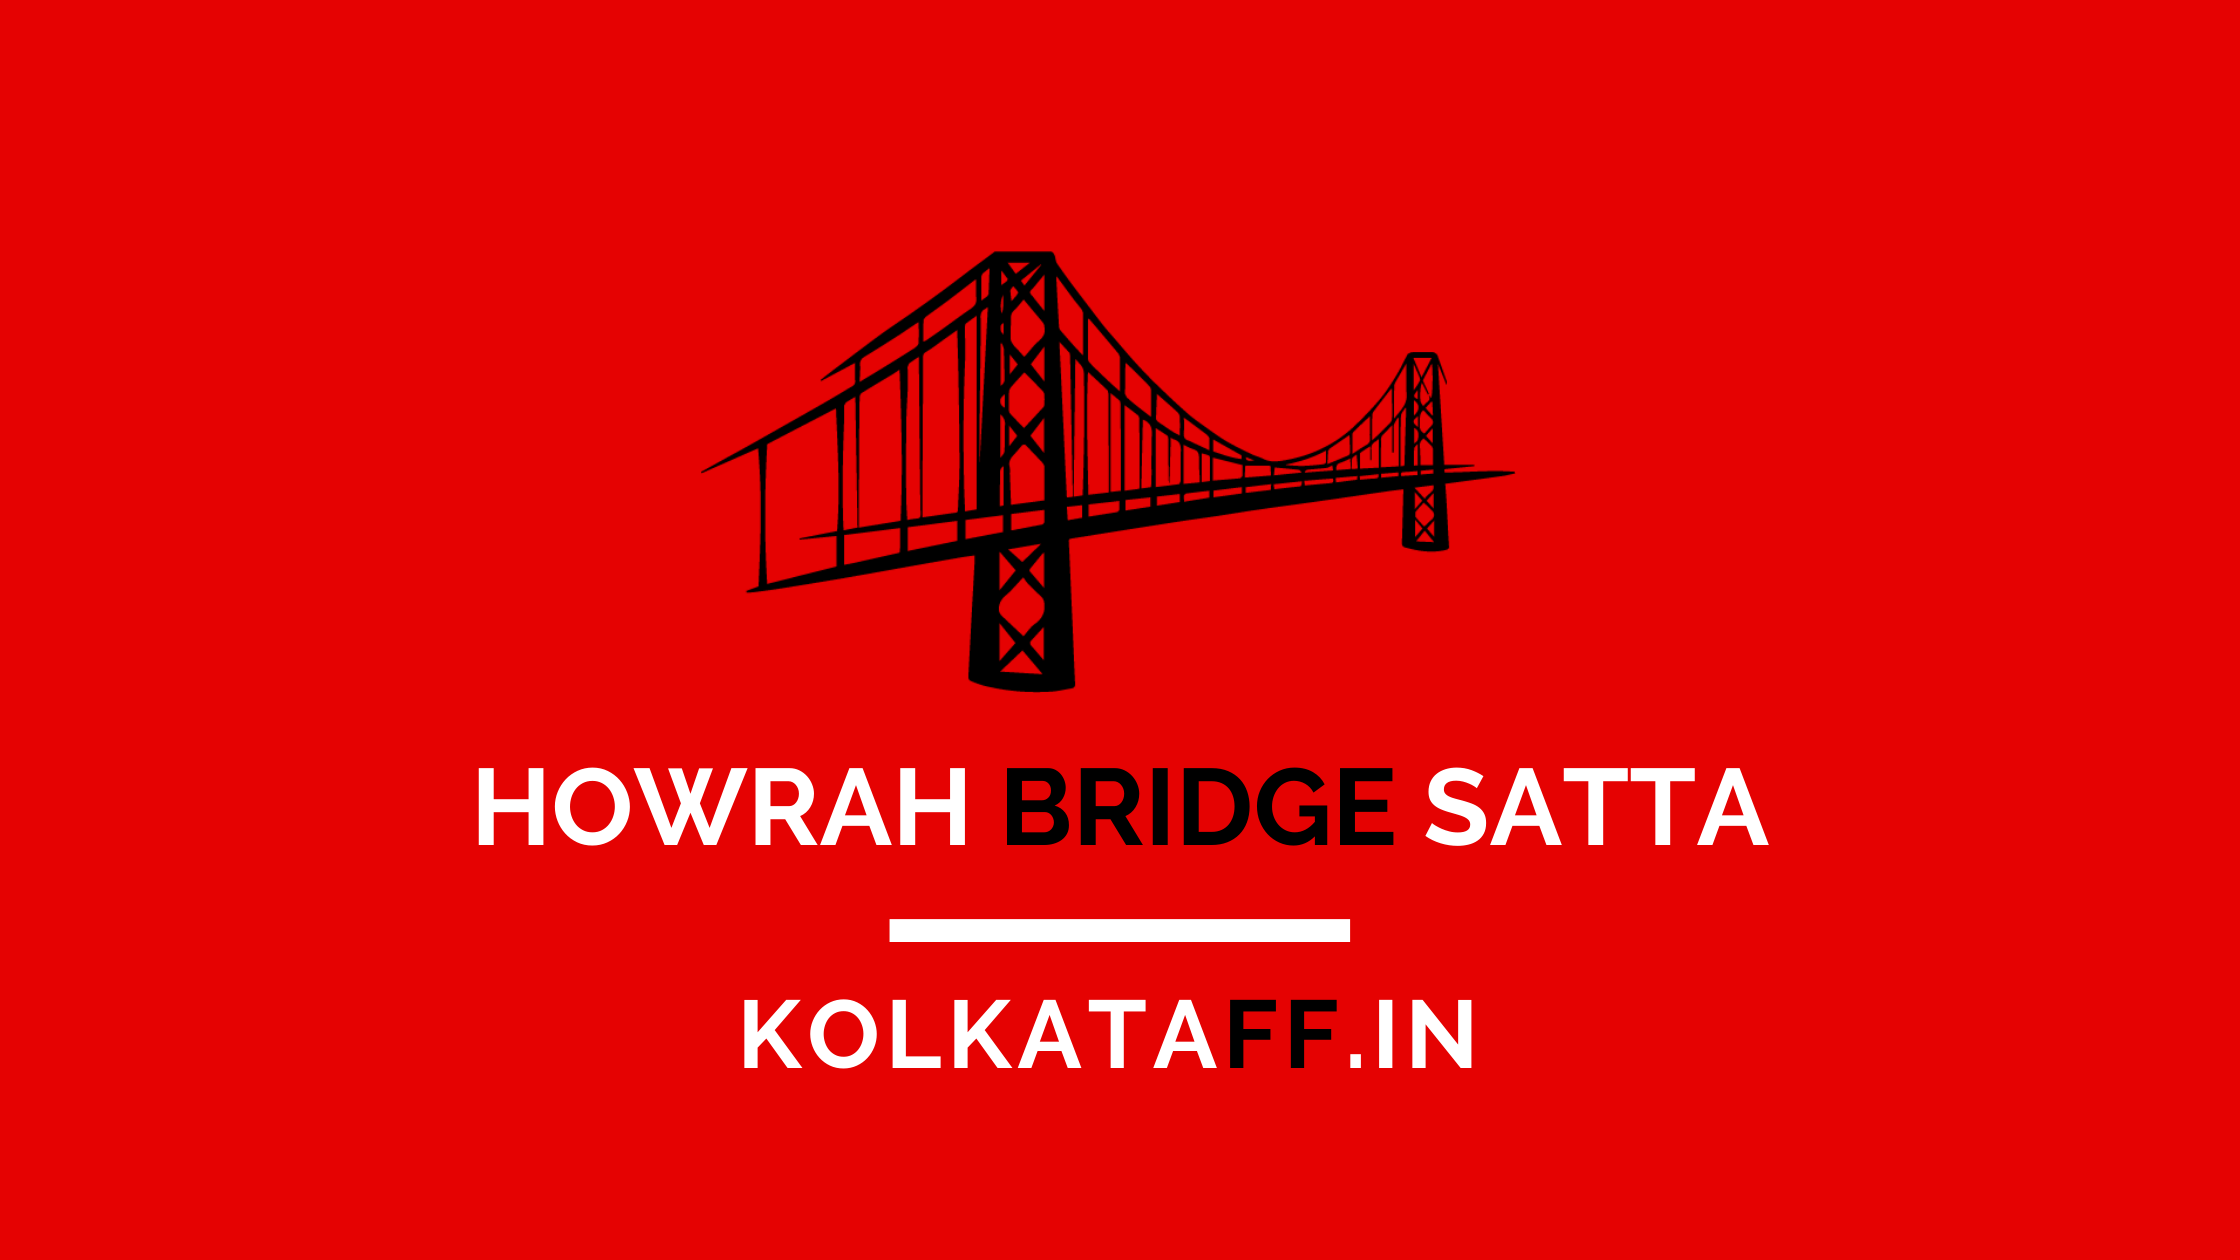 howrah bridge satta